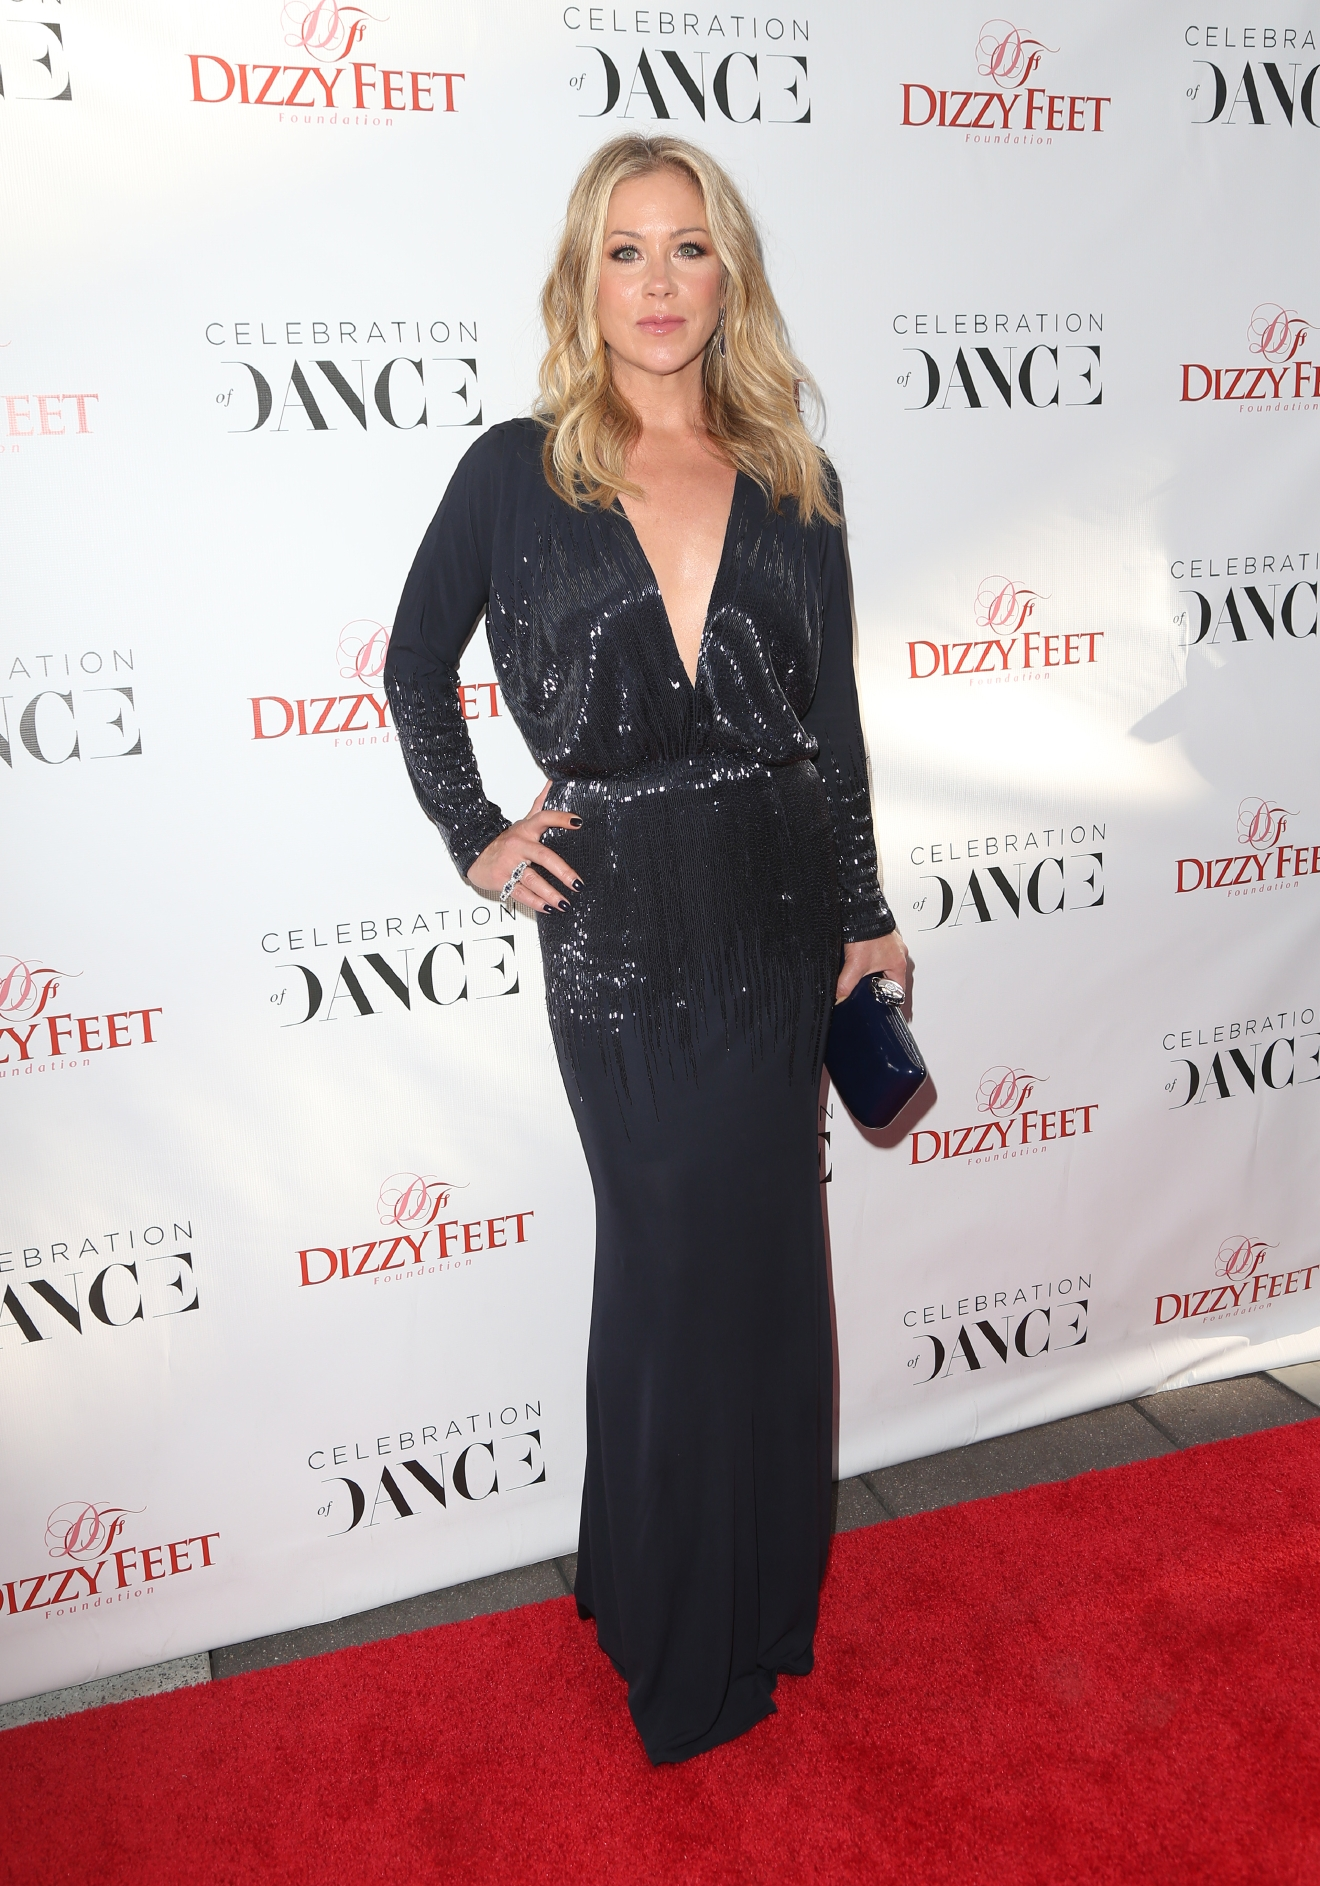 The Dizzy Feet Foundation 5th Annual �Celebration of Dance Gala�  Featuring: Christina Applegate Where: Los Angeles, California, United States When: 02 Aug 2015 Credit: FayesVision/WENN.com